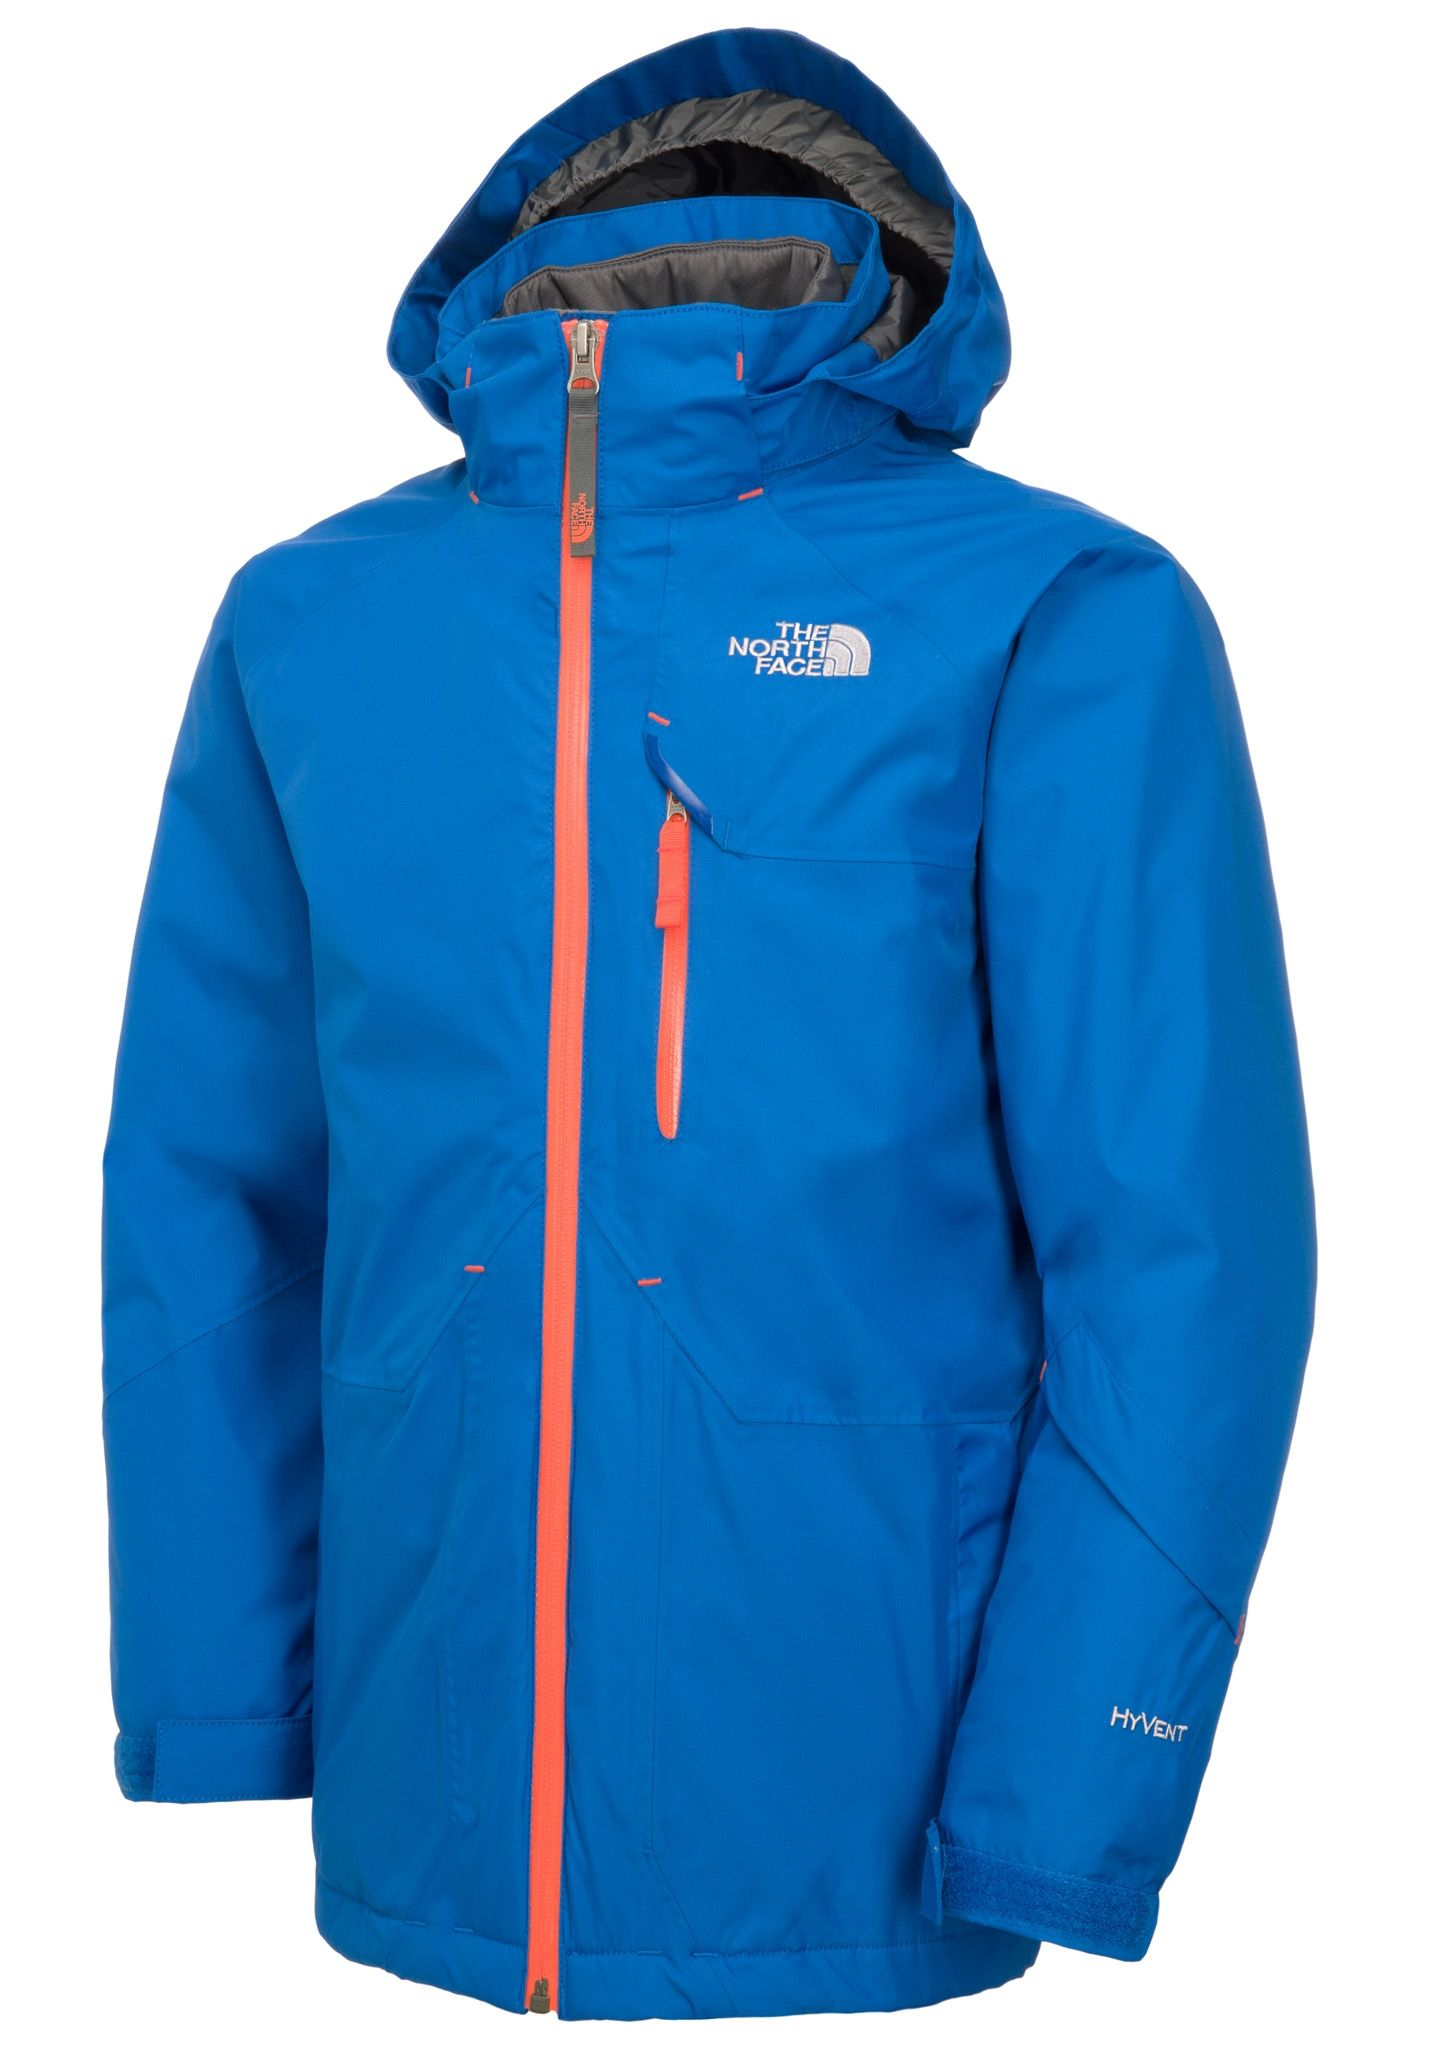 Snowboard Giacca Ozone per THE FACE Triclimate NORTH Jacket 4X7Rqw